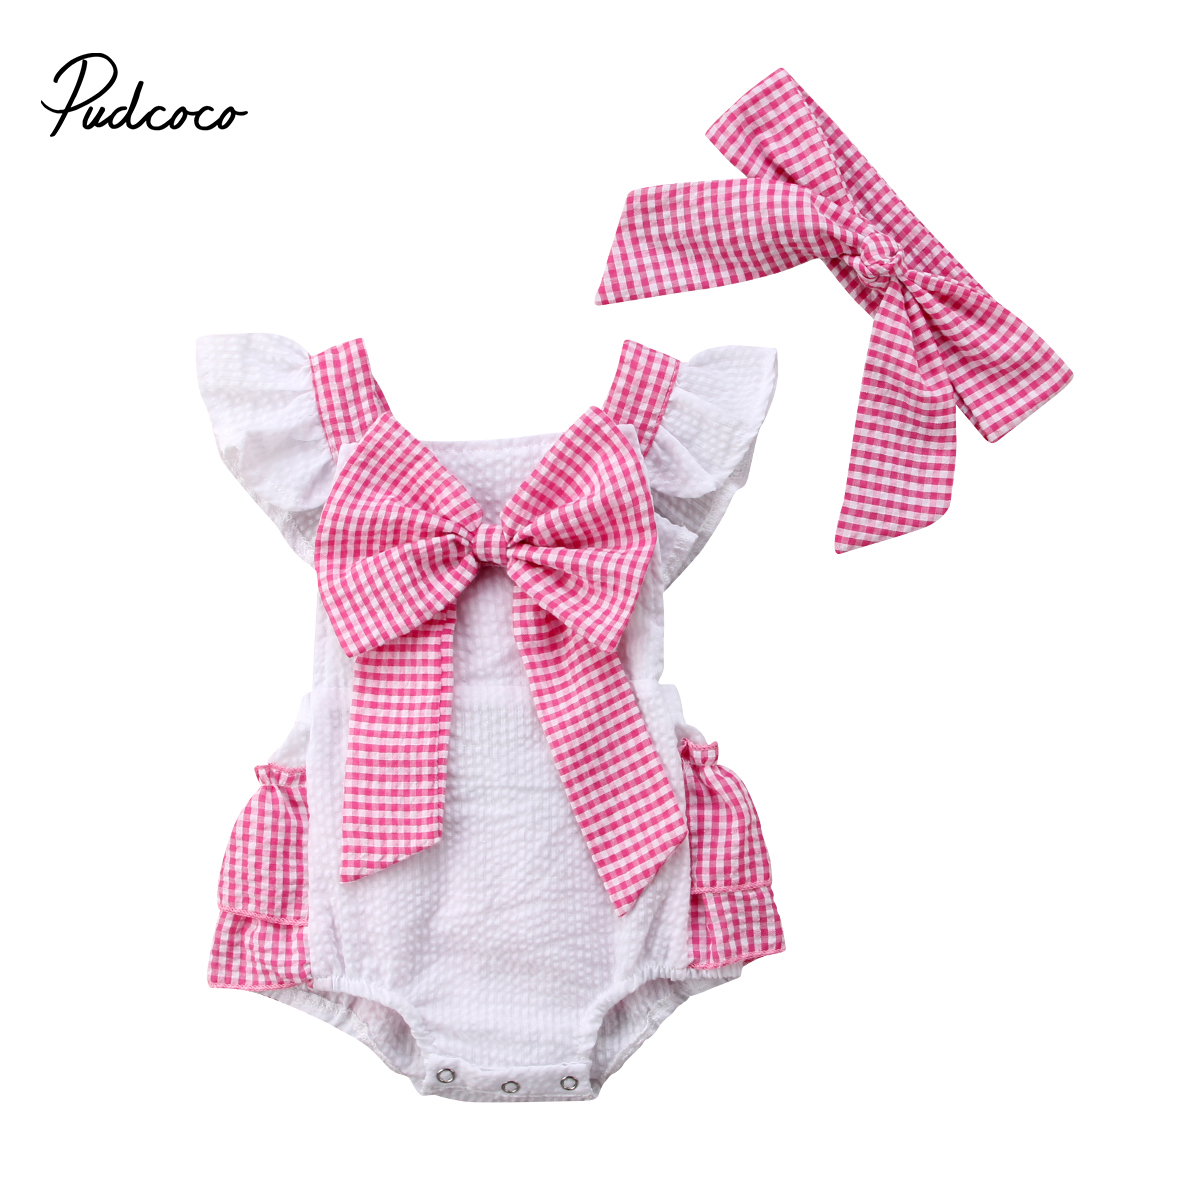 Lovely Baby Girls Newborn Plaids Bodysuit Bow Knot Backless Summer Jumpsuit Outfit Headband Short Swing Sleeve Backless Bodysuit Crease-Resistance Bodysuits & One-pieces Bodysuits